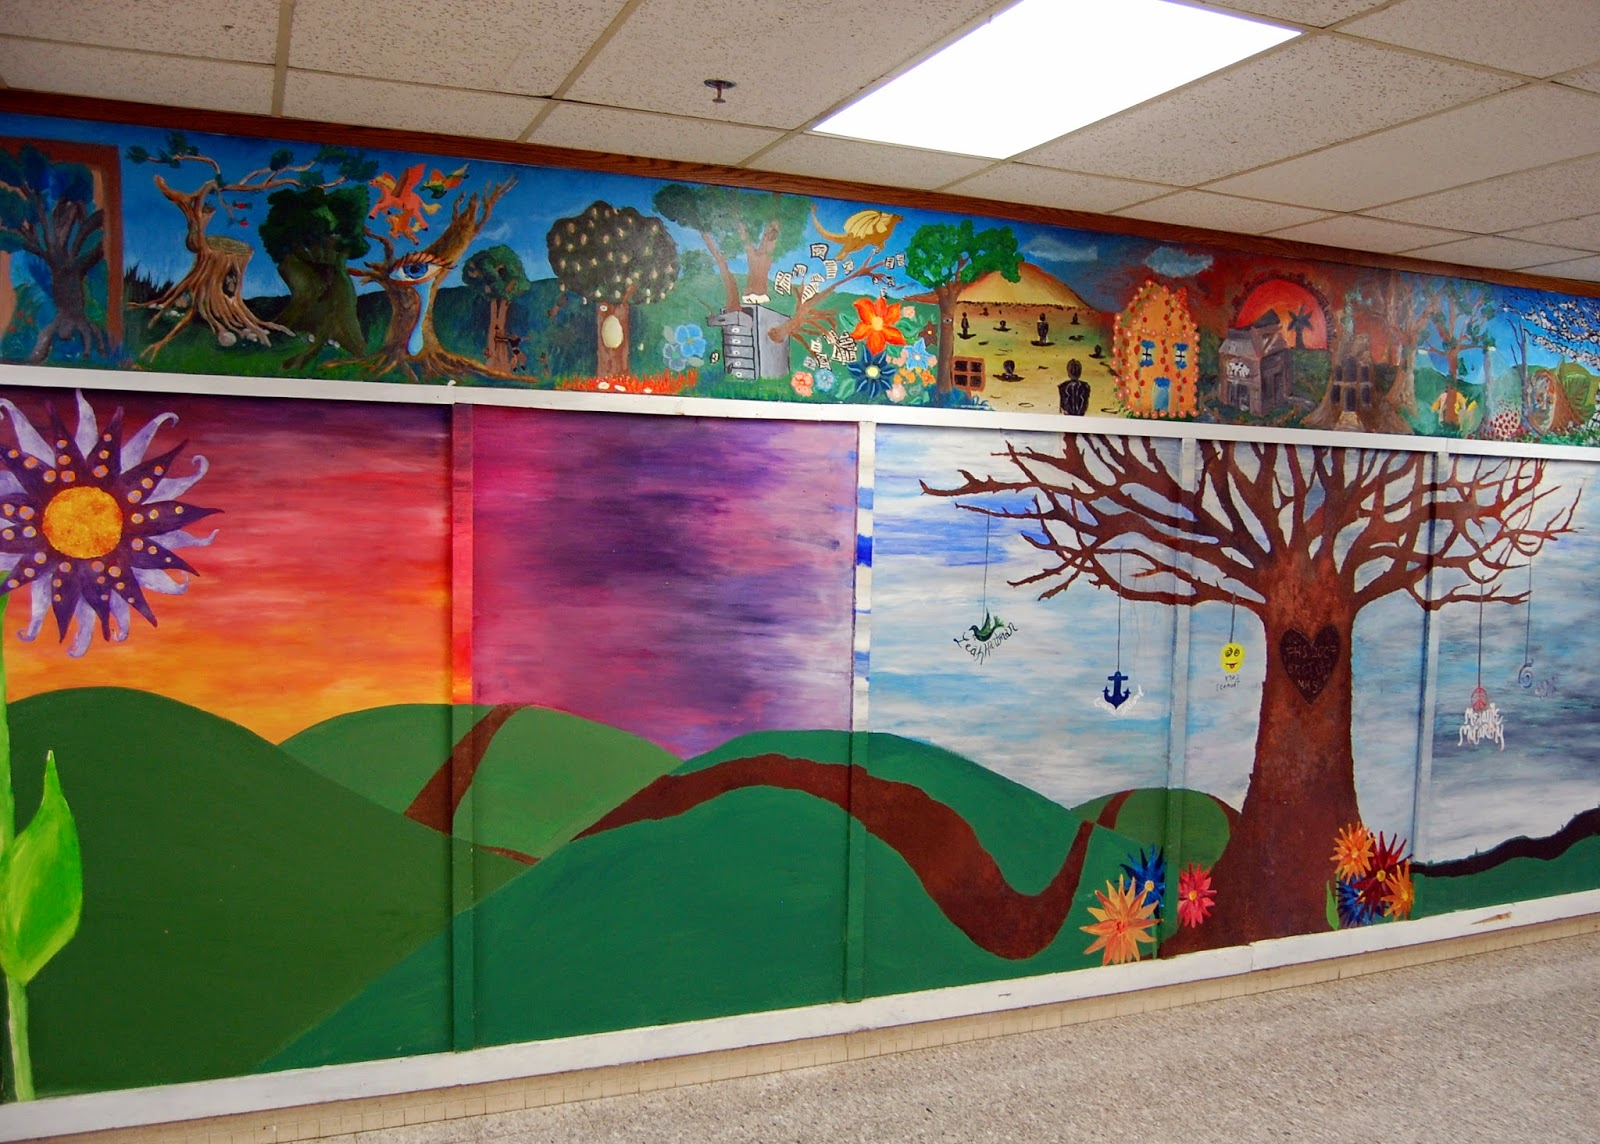 student art - full wall mural - view from the left